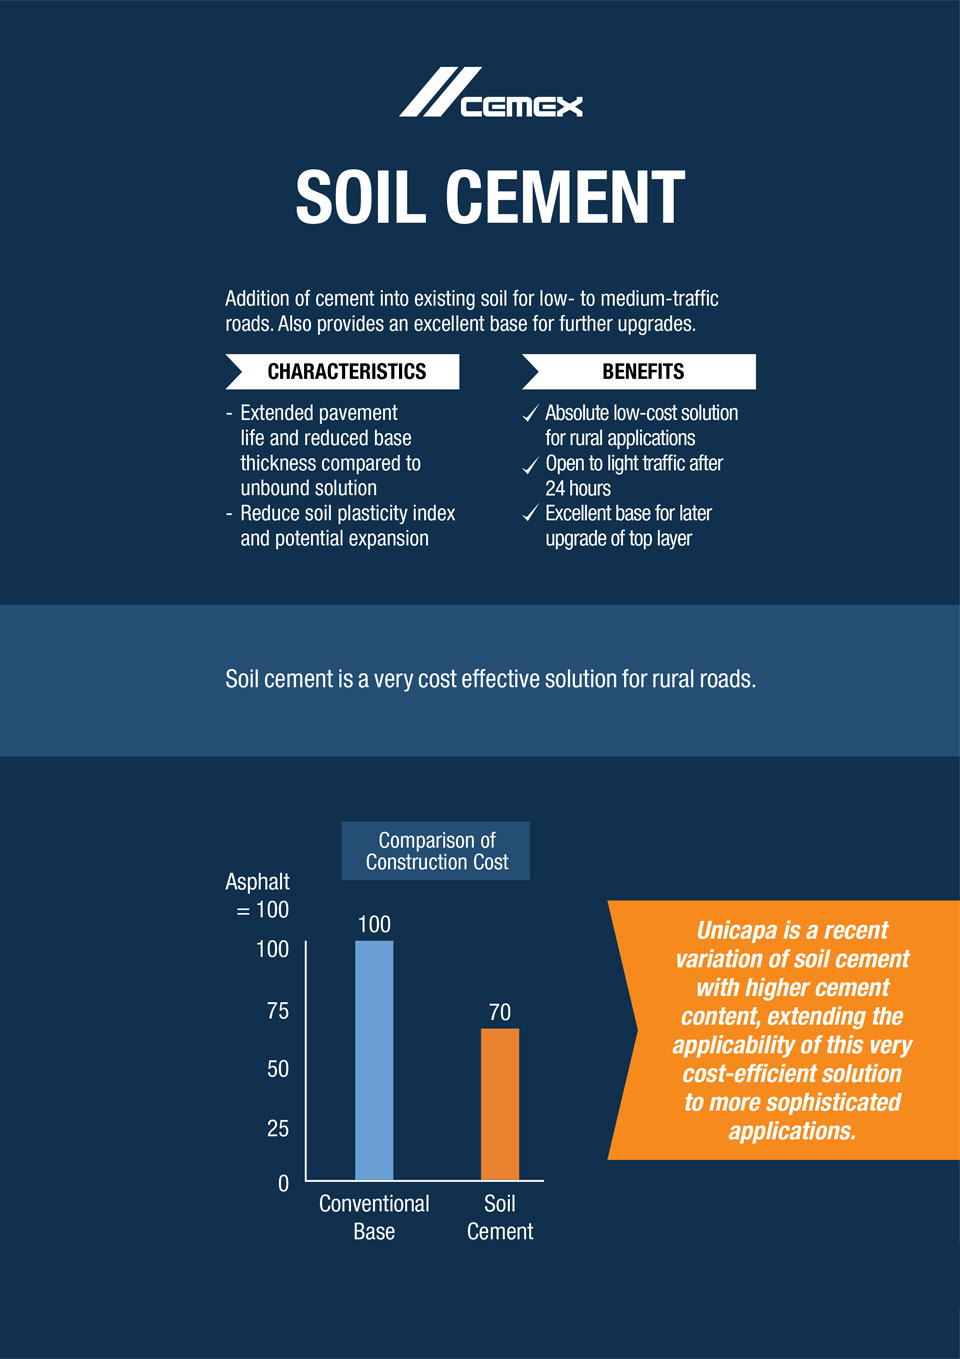 the image shows characteristics and benefits of soil cement